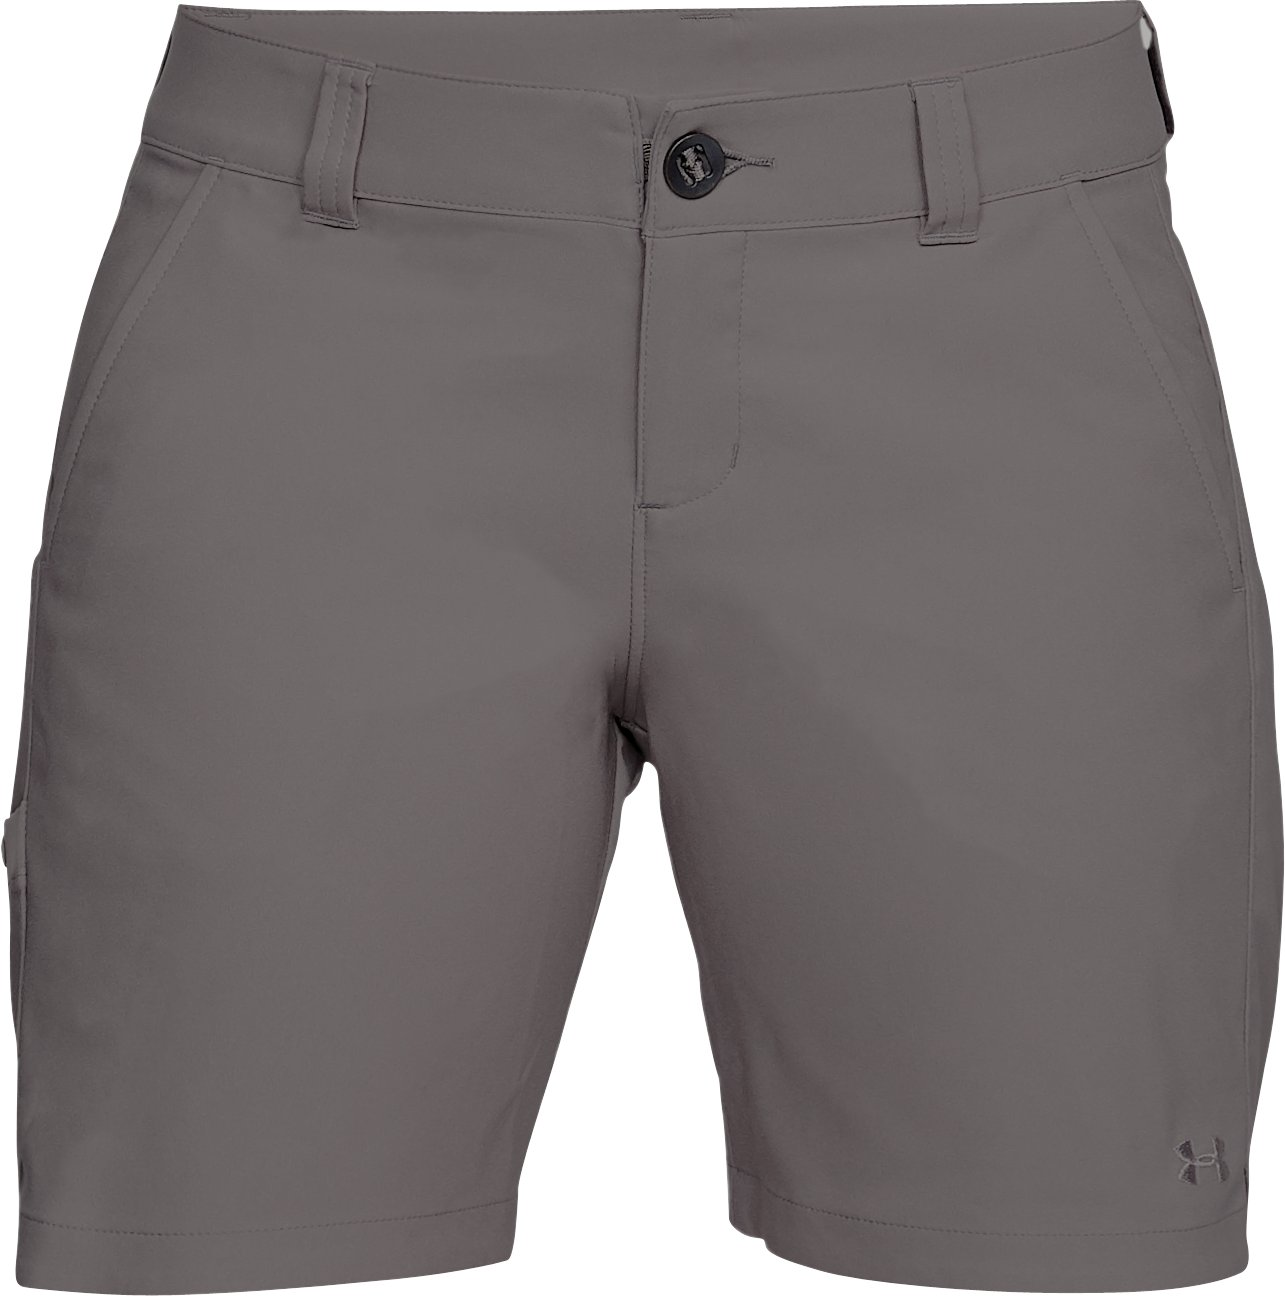 "Women's UA Fish Hunter Shorts - 7"", MINK GRAY,"